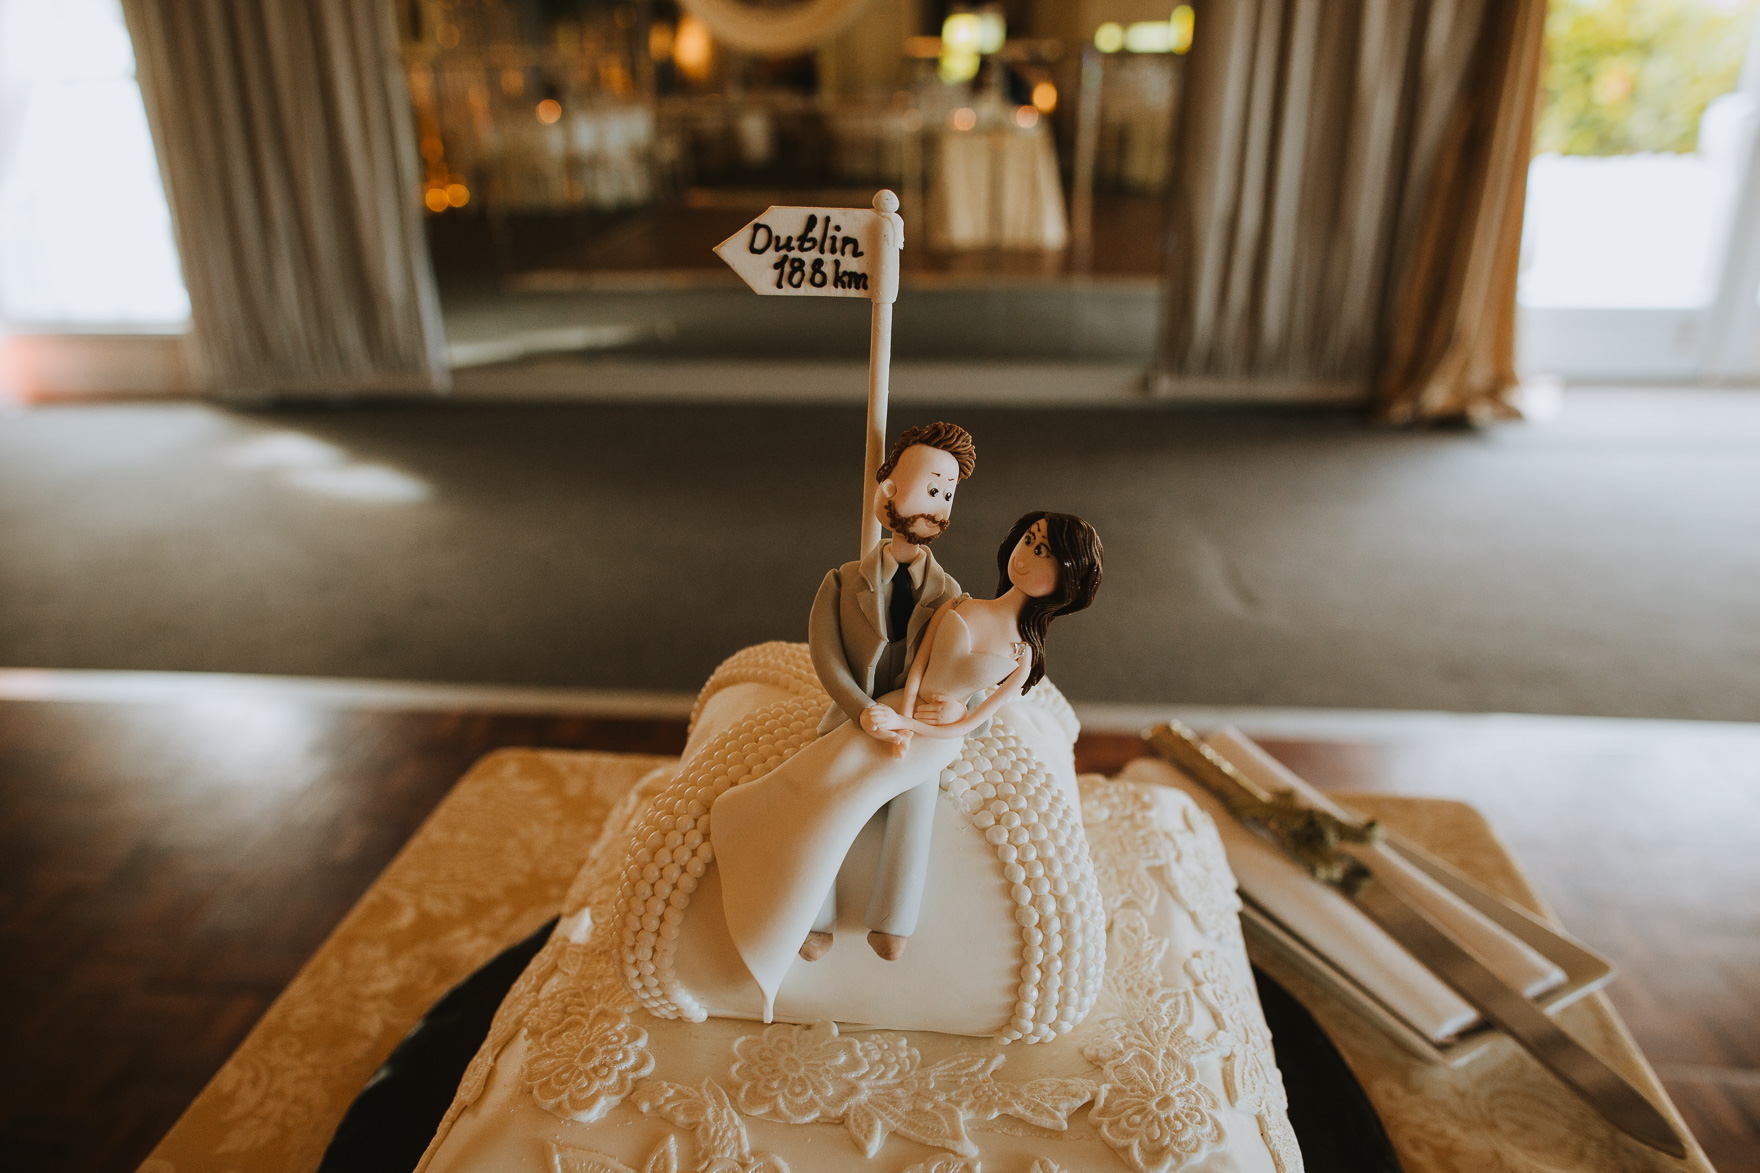 A cake sitting on top of a wooden table